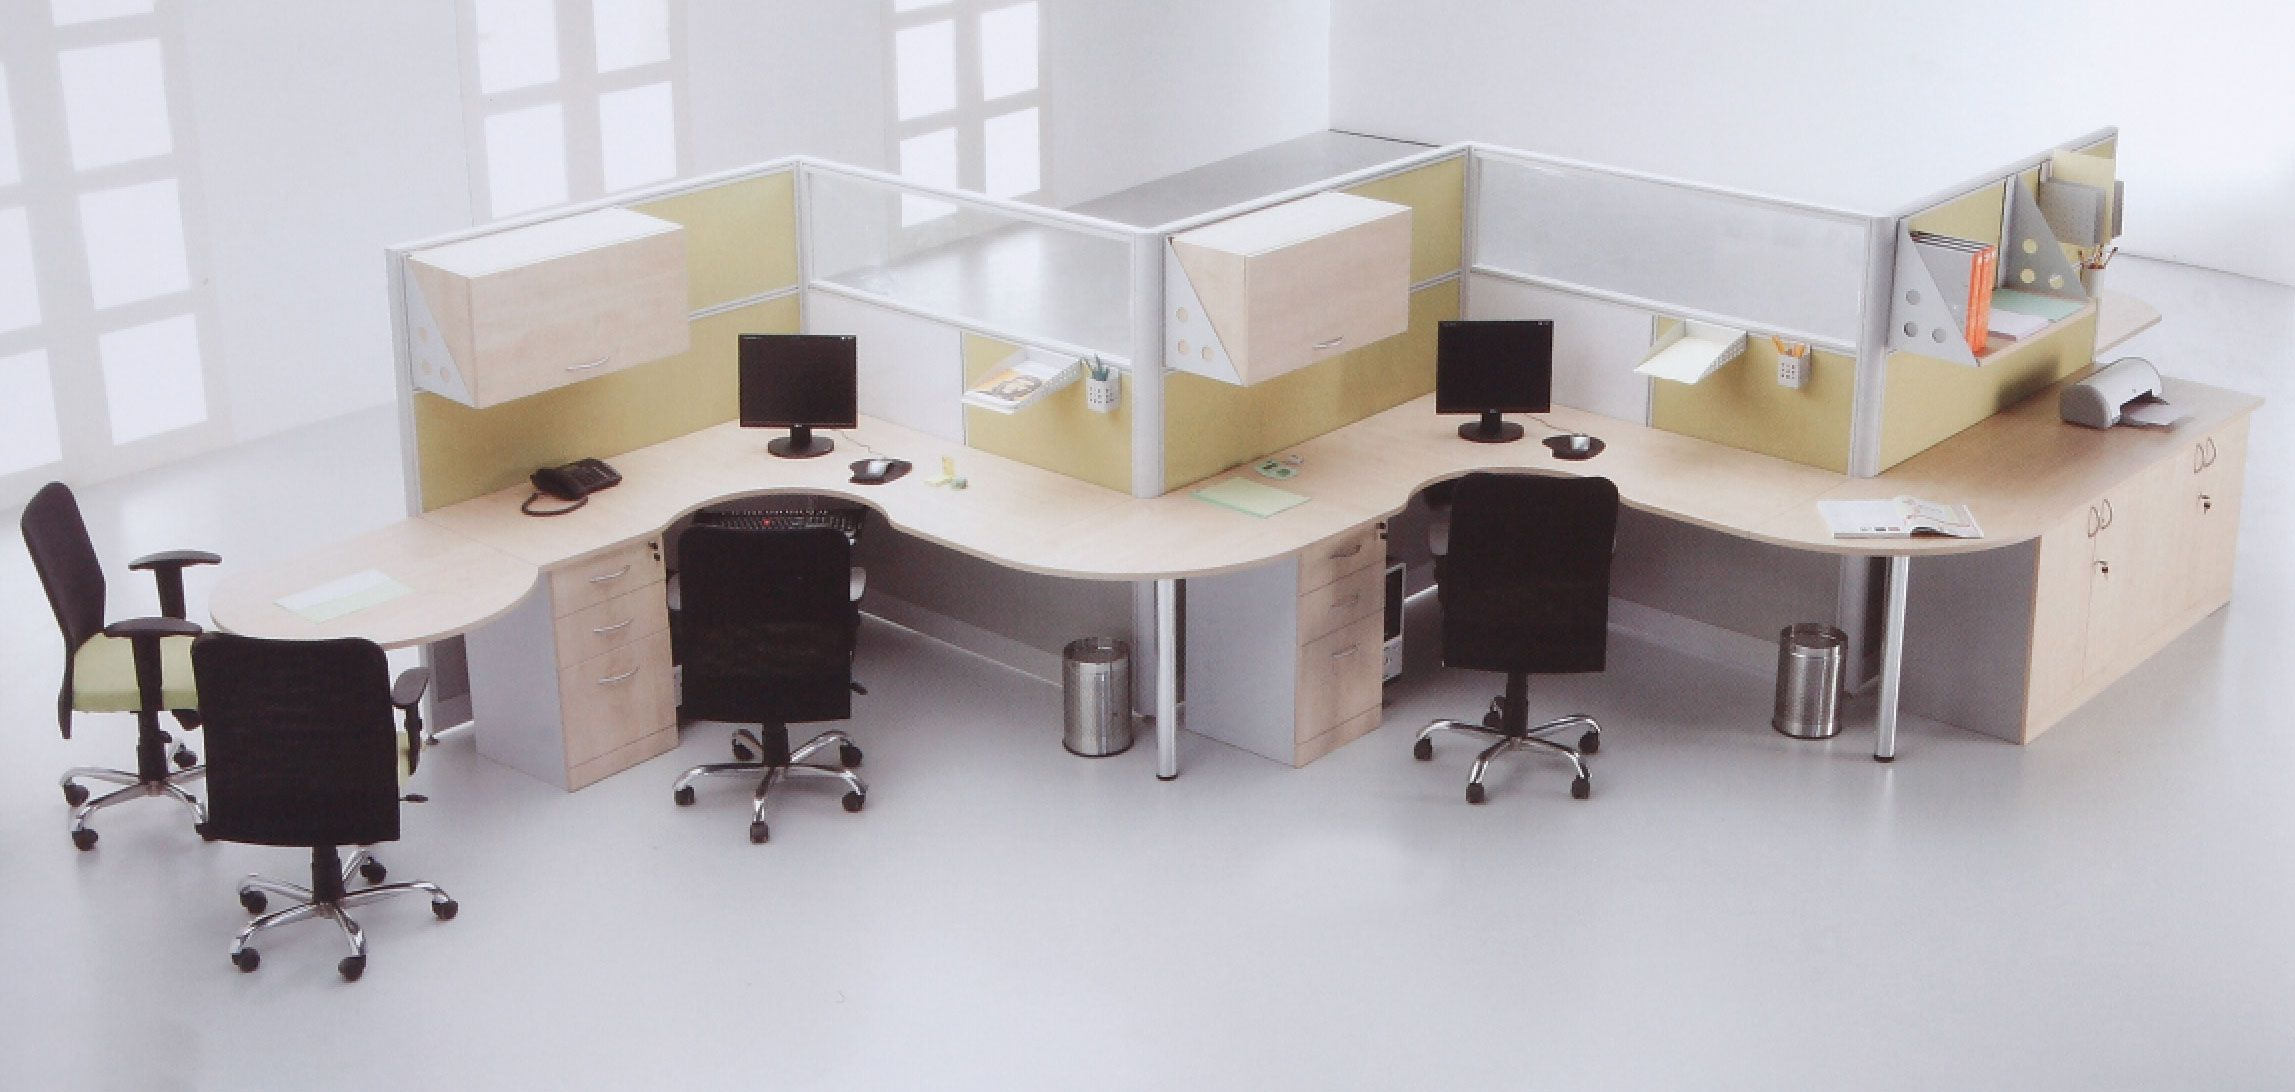 Workstation Furniture Modular Office Workstation Furniture Italian Design Designer